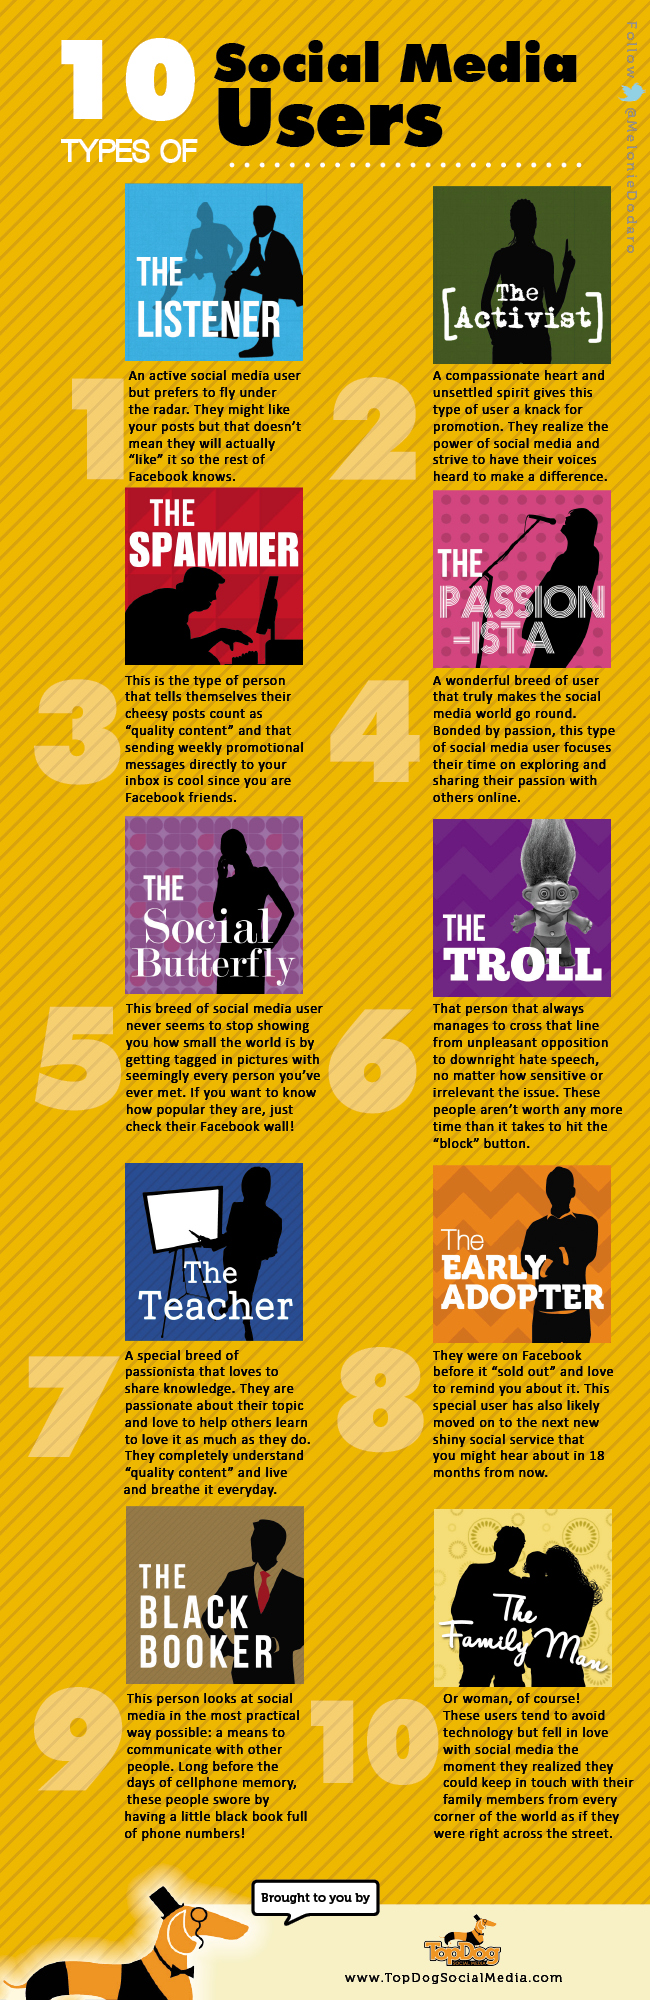 10 Types of Social Media Users